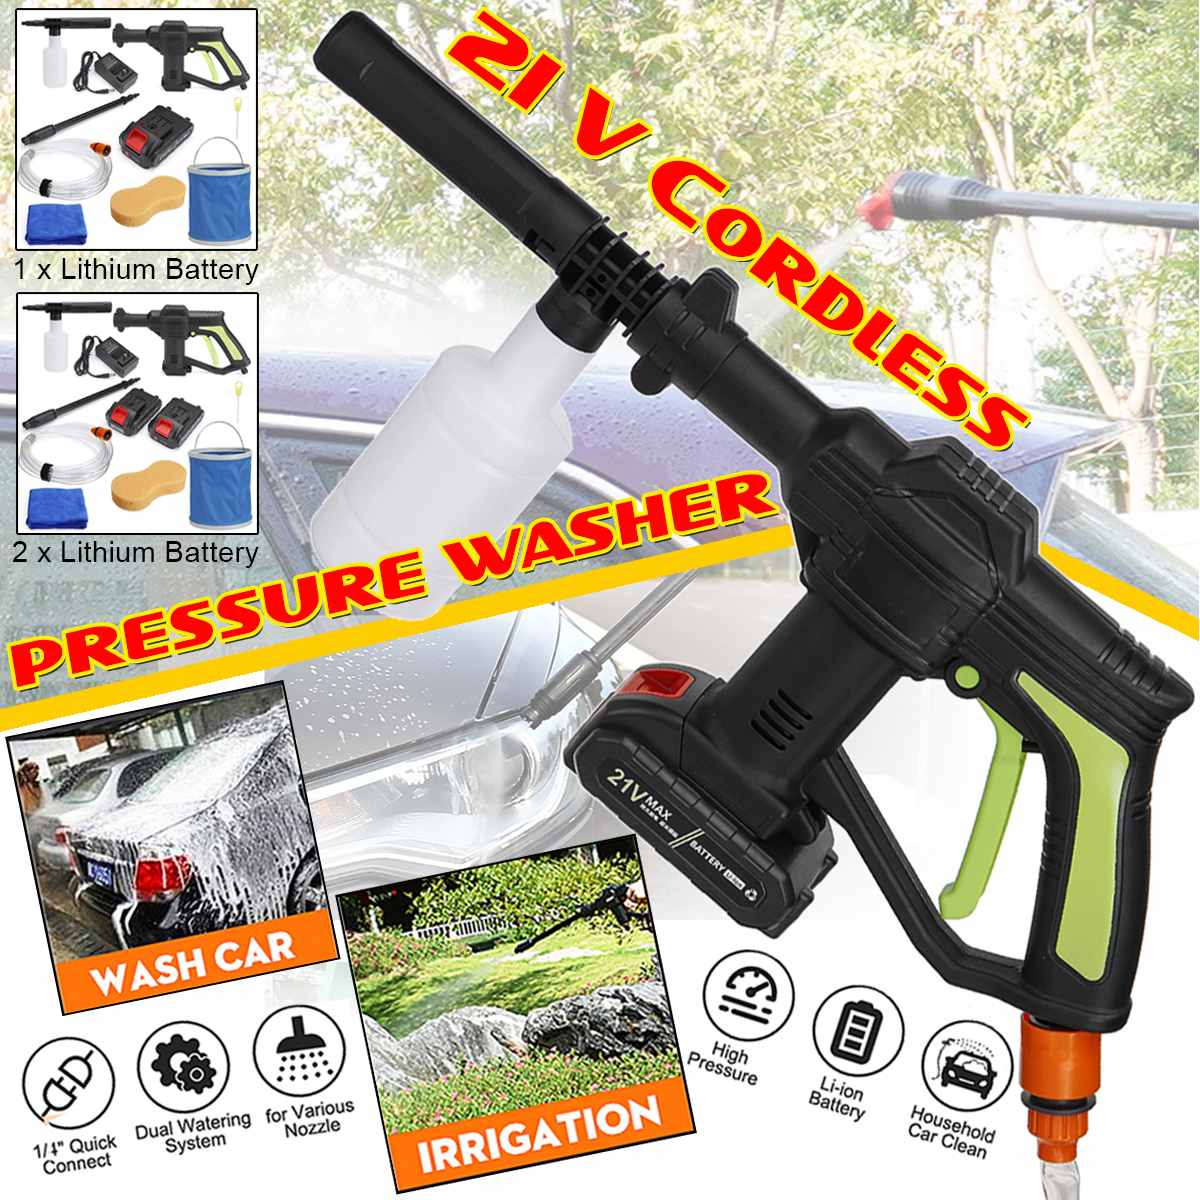 21V Portable Cordless Car Washer Machine High Pressure Cleaner Electric Water Gun Auto Garden Home Cleaning Tools With Battery